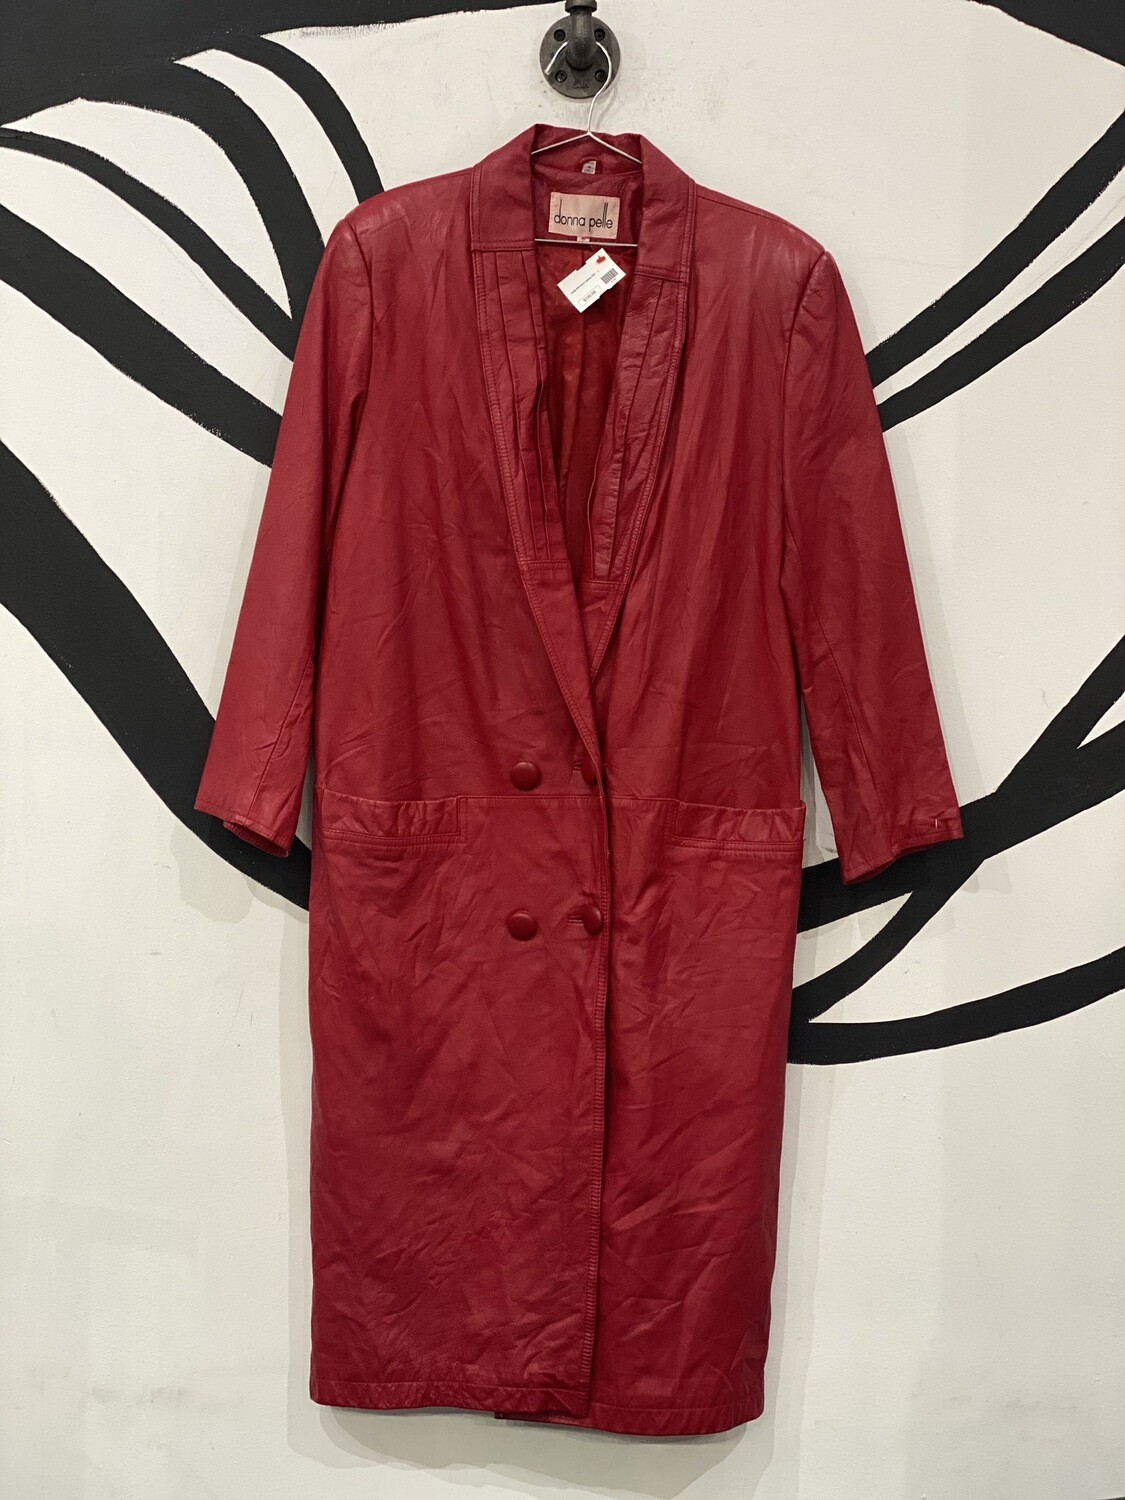 Donna Pelle Oversized Red Leather Trench Coat Size S